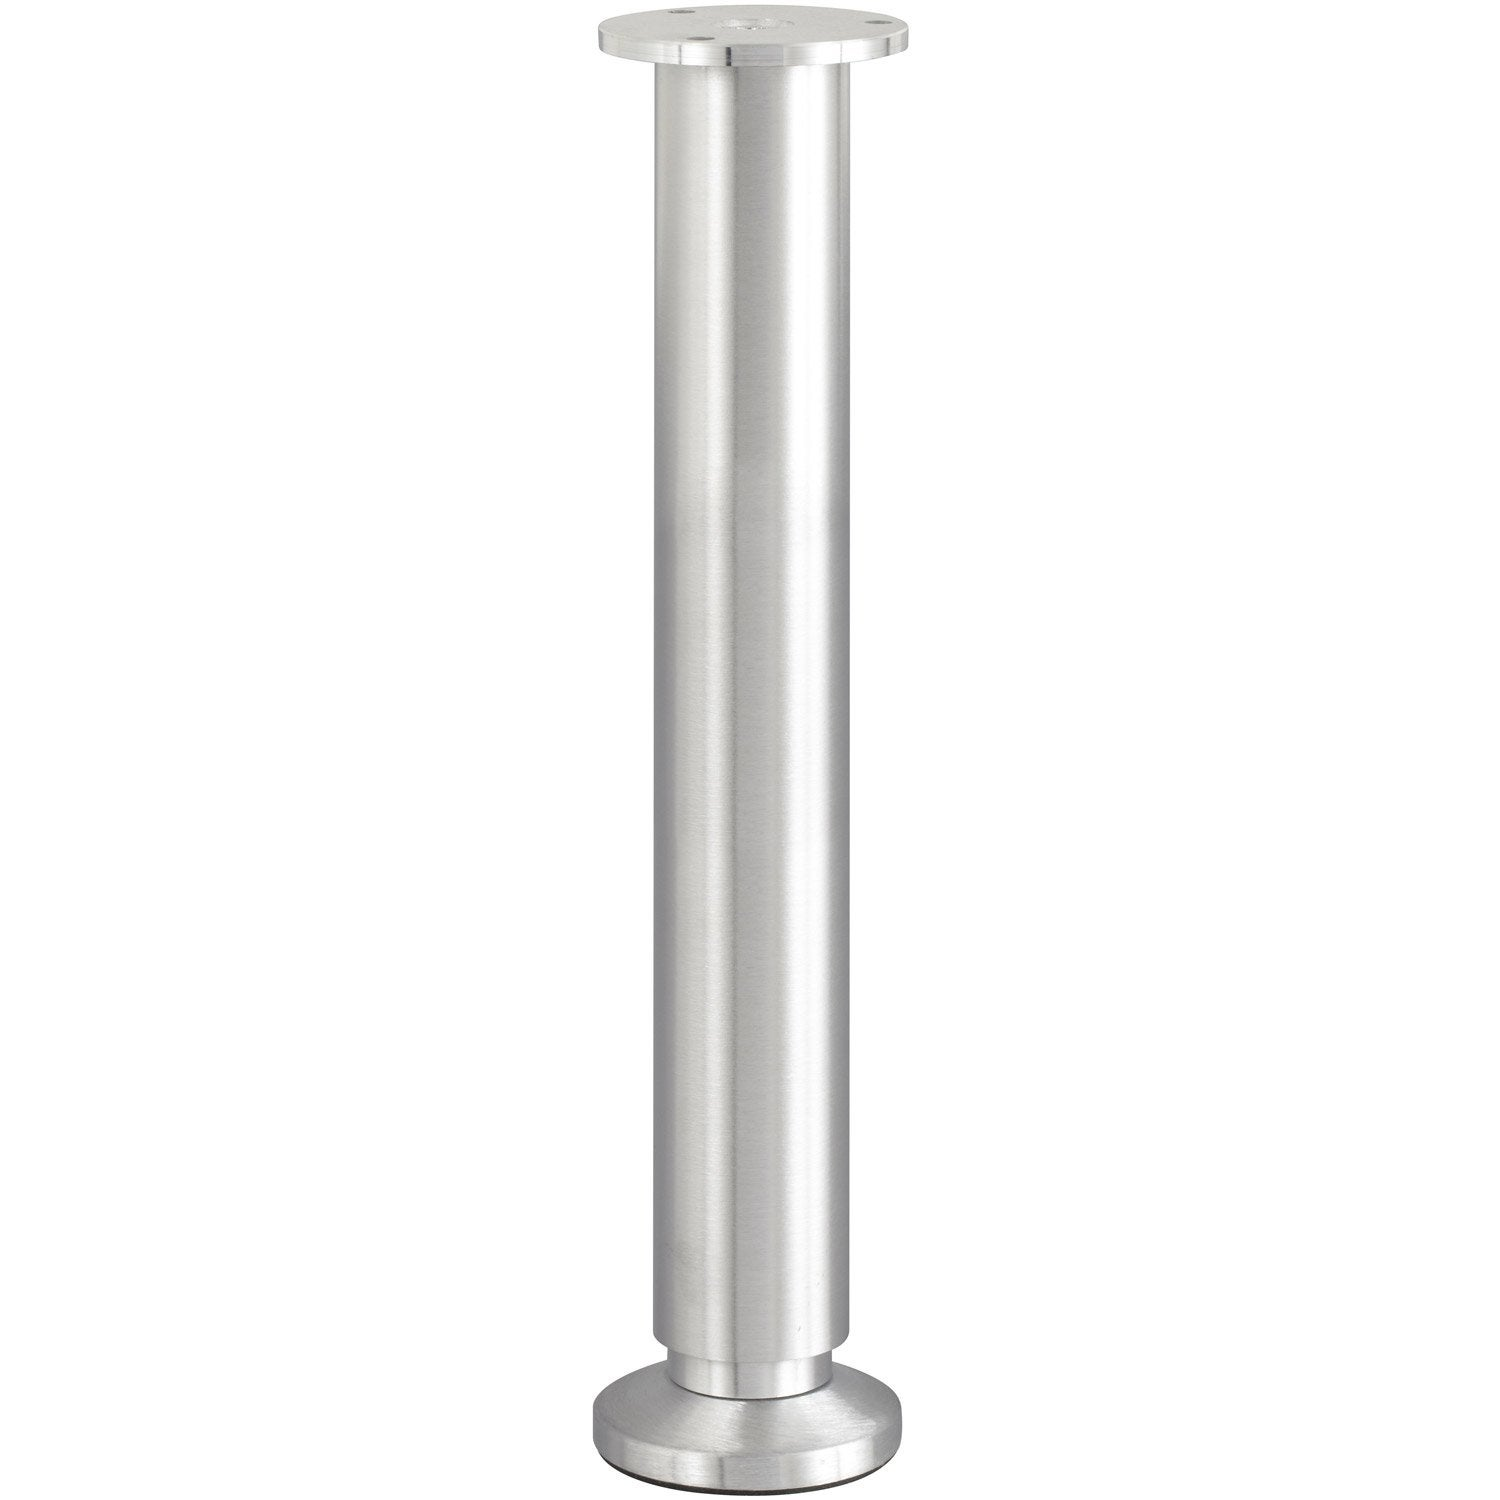 Pied de lit sommier cylindrique r glable en aluminium bross gris 30cmx38mm - Leroy merlin pied de table ...